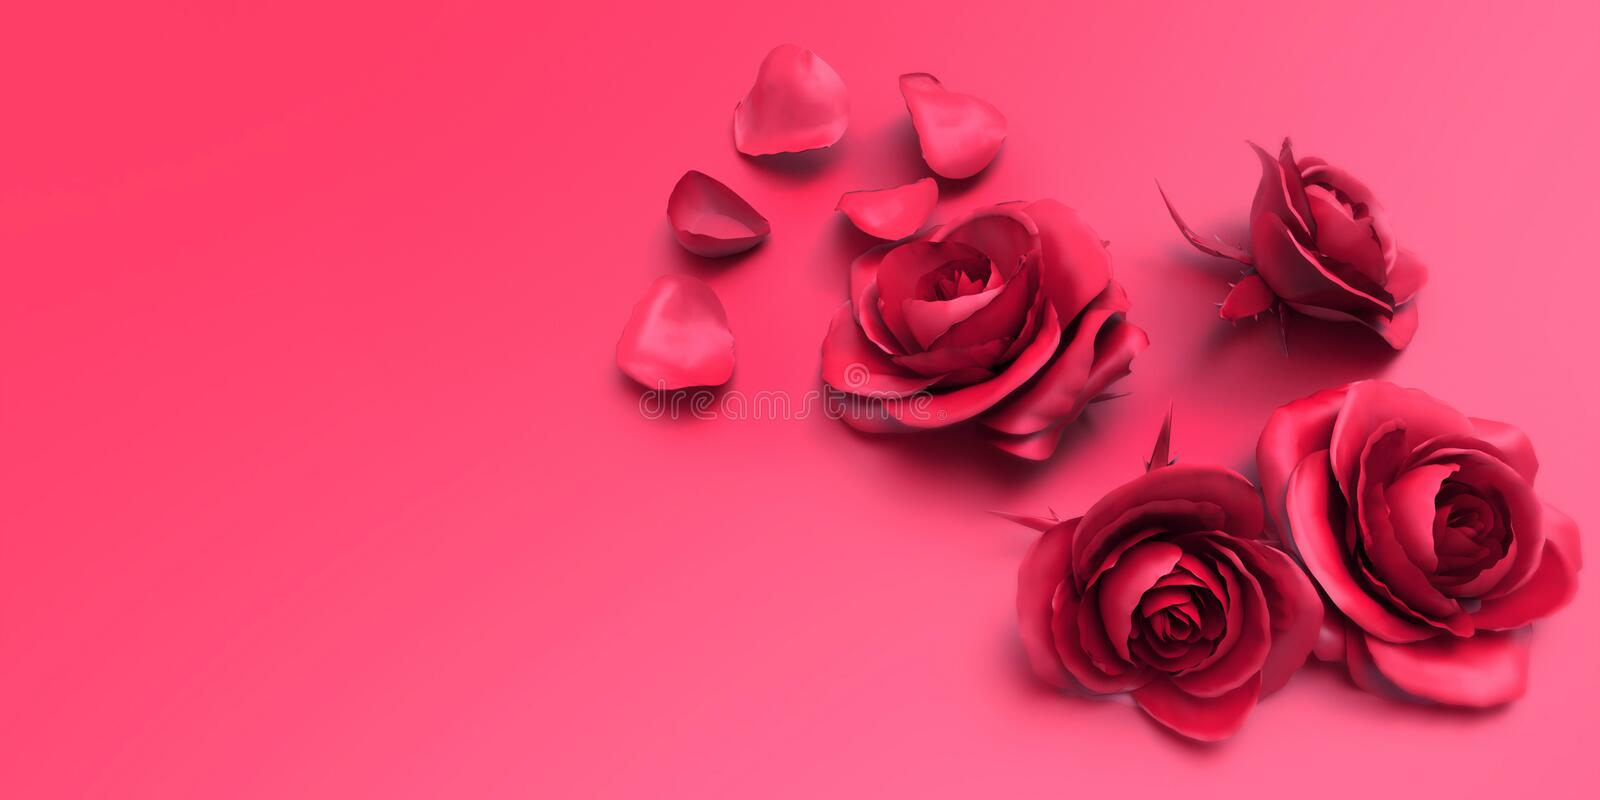 Valentines day Love Roses and Petals on pink background stock images